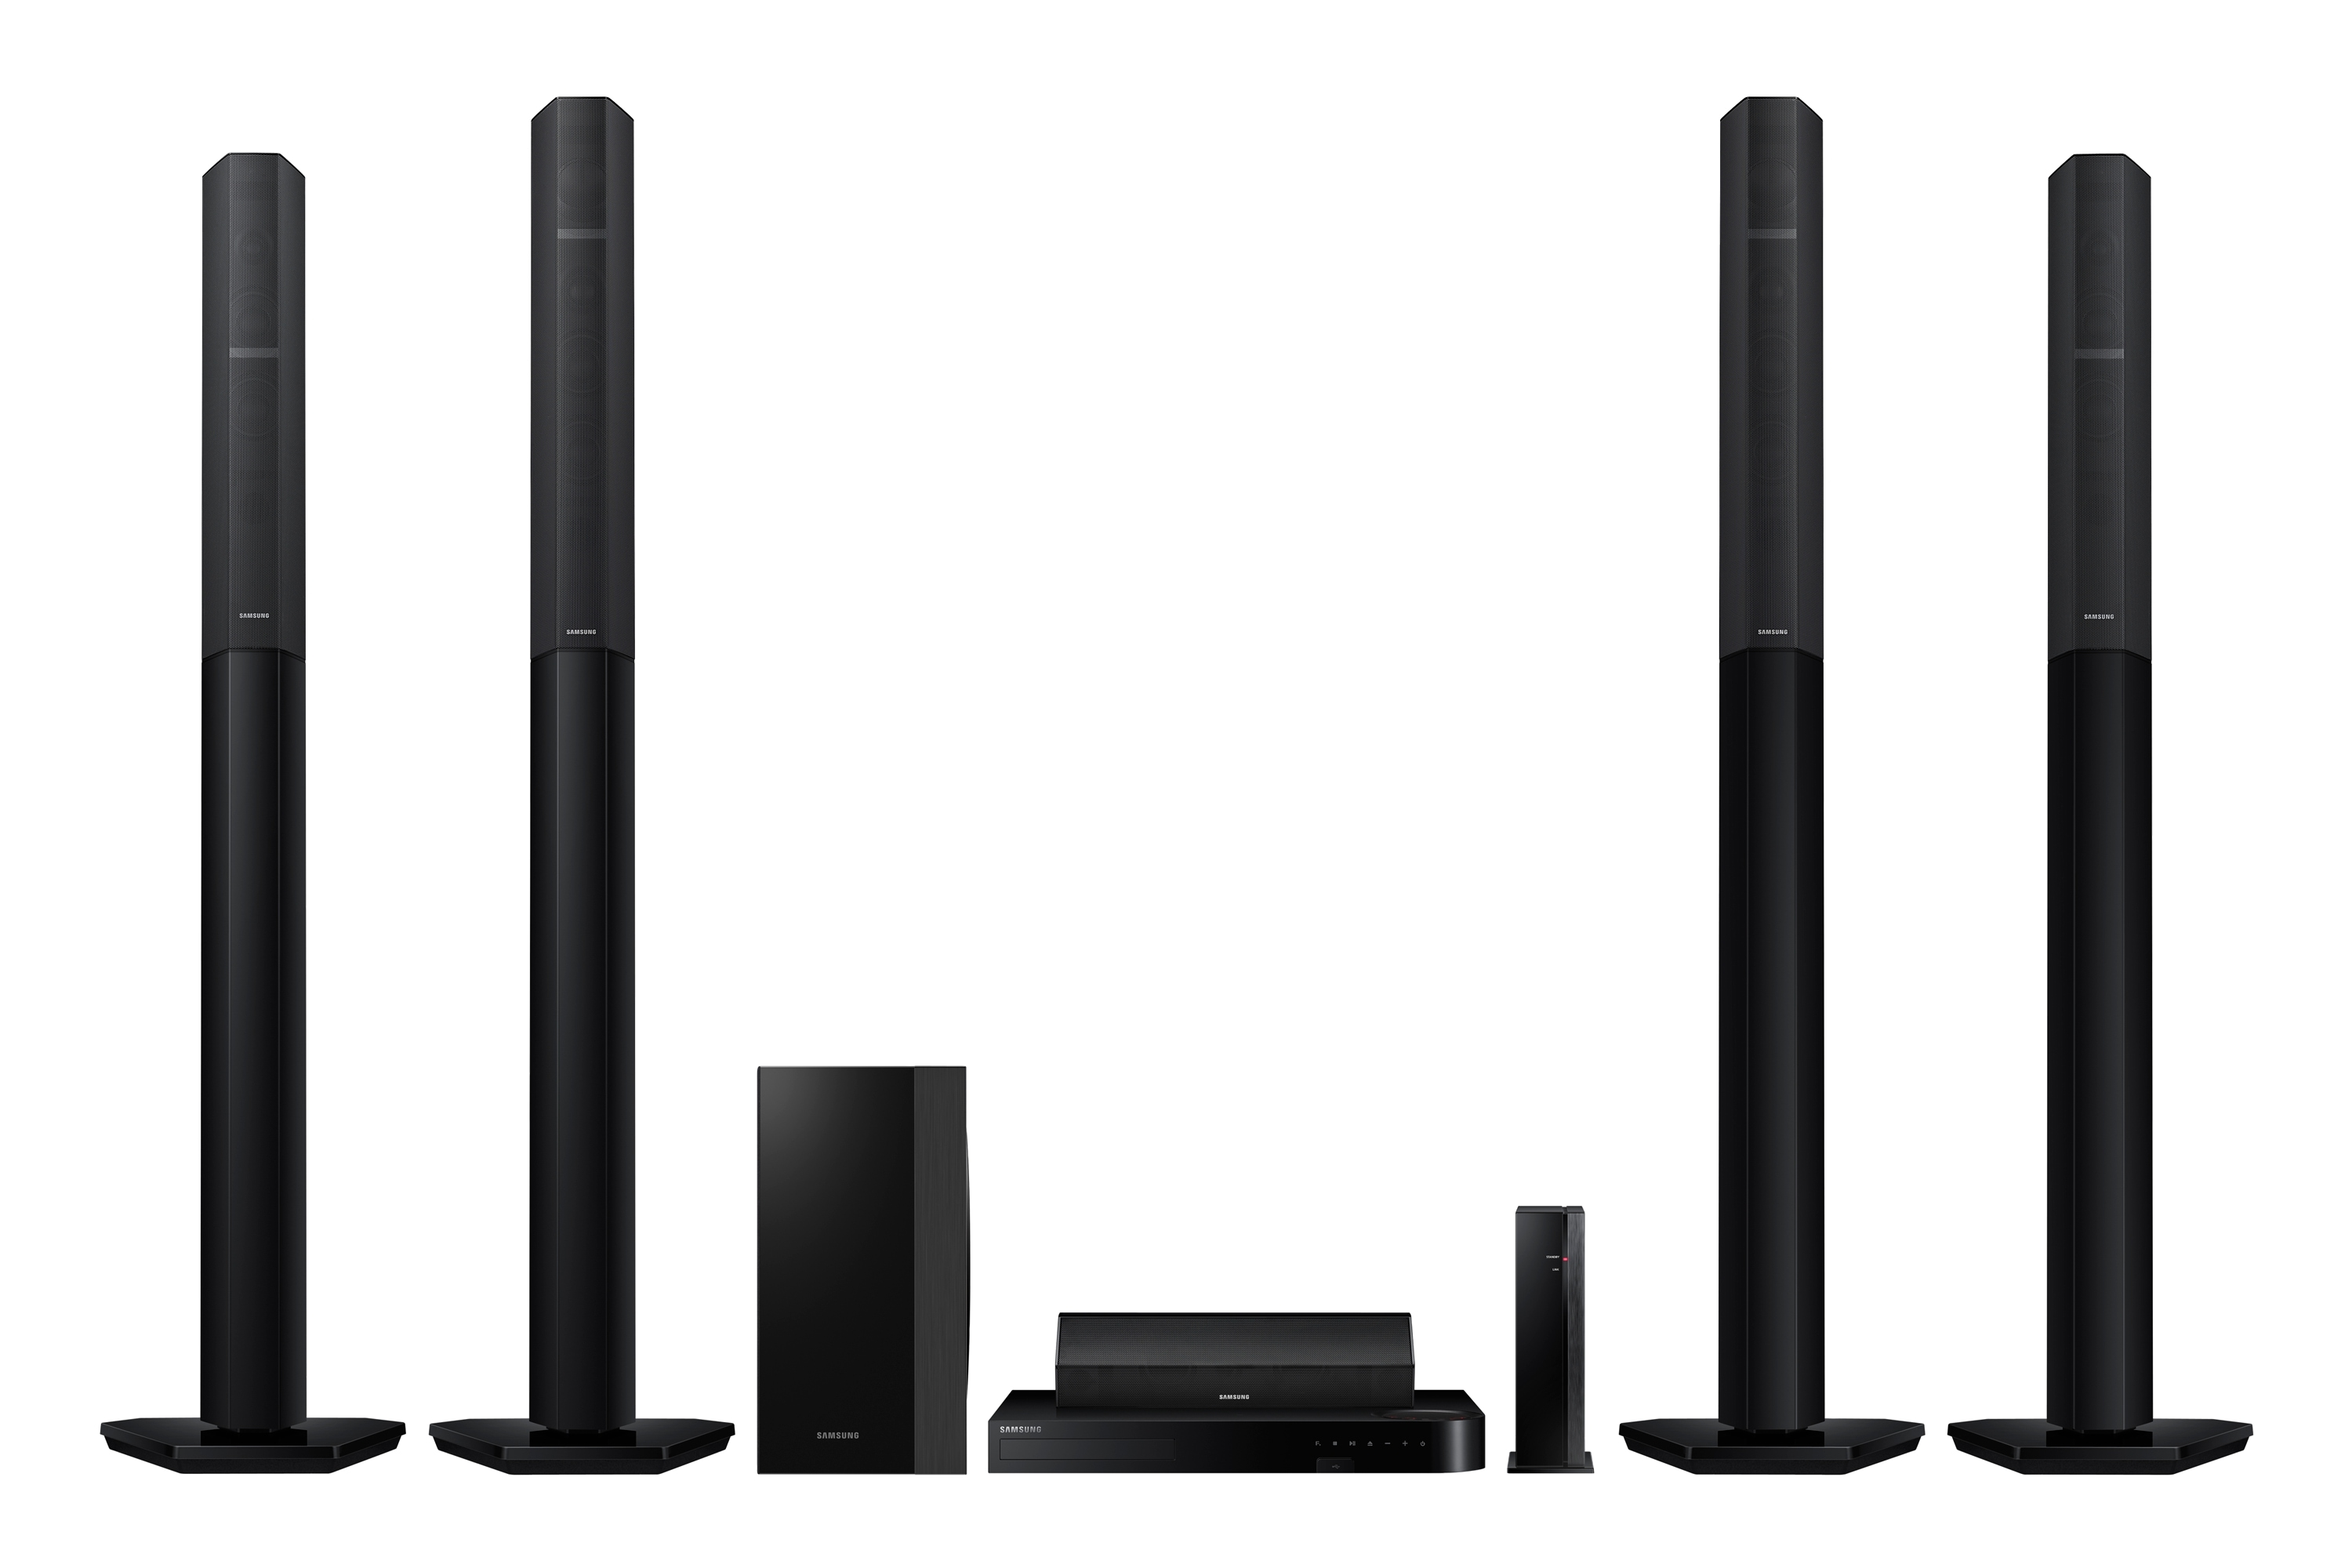 1330 W 7.1Ch Blu-ray Home Entertainment System H7750